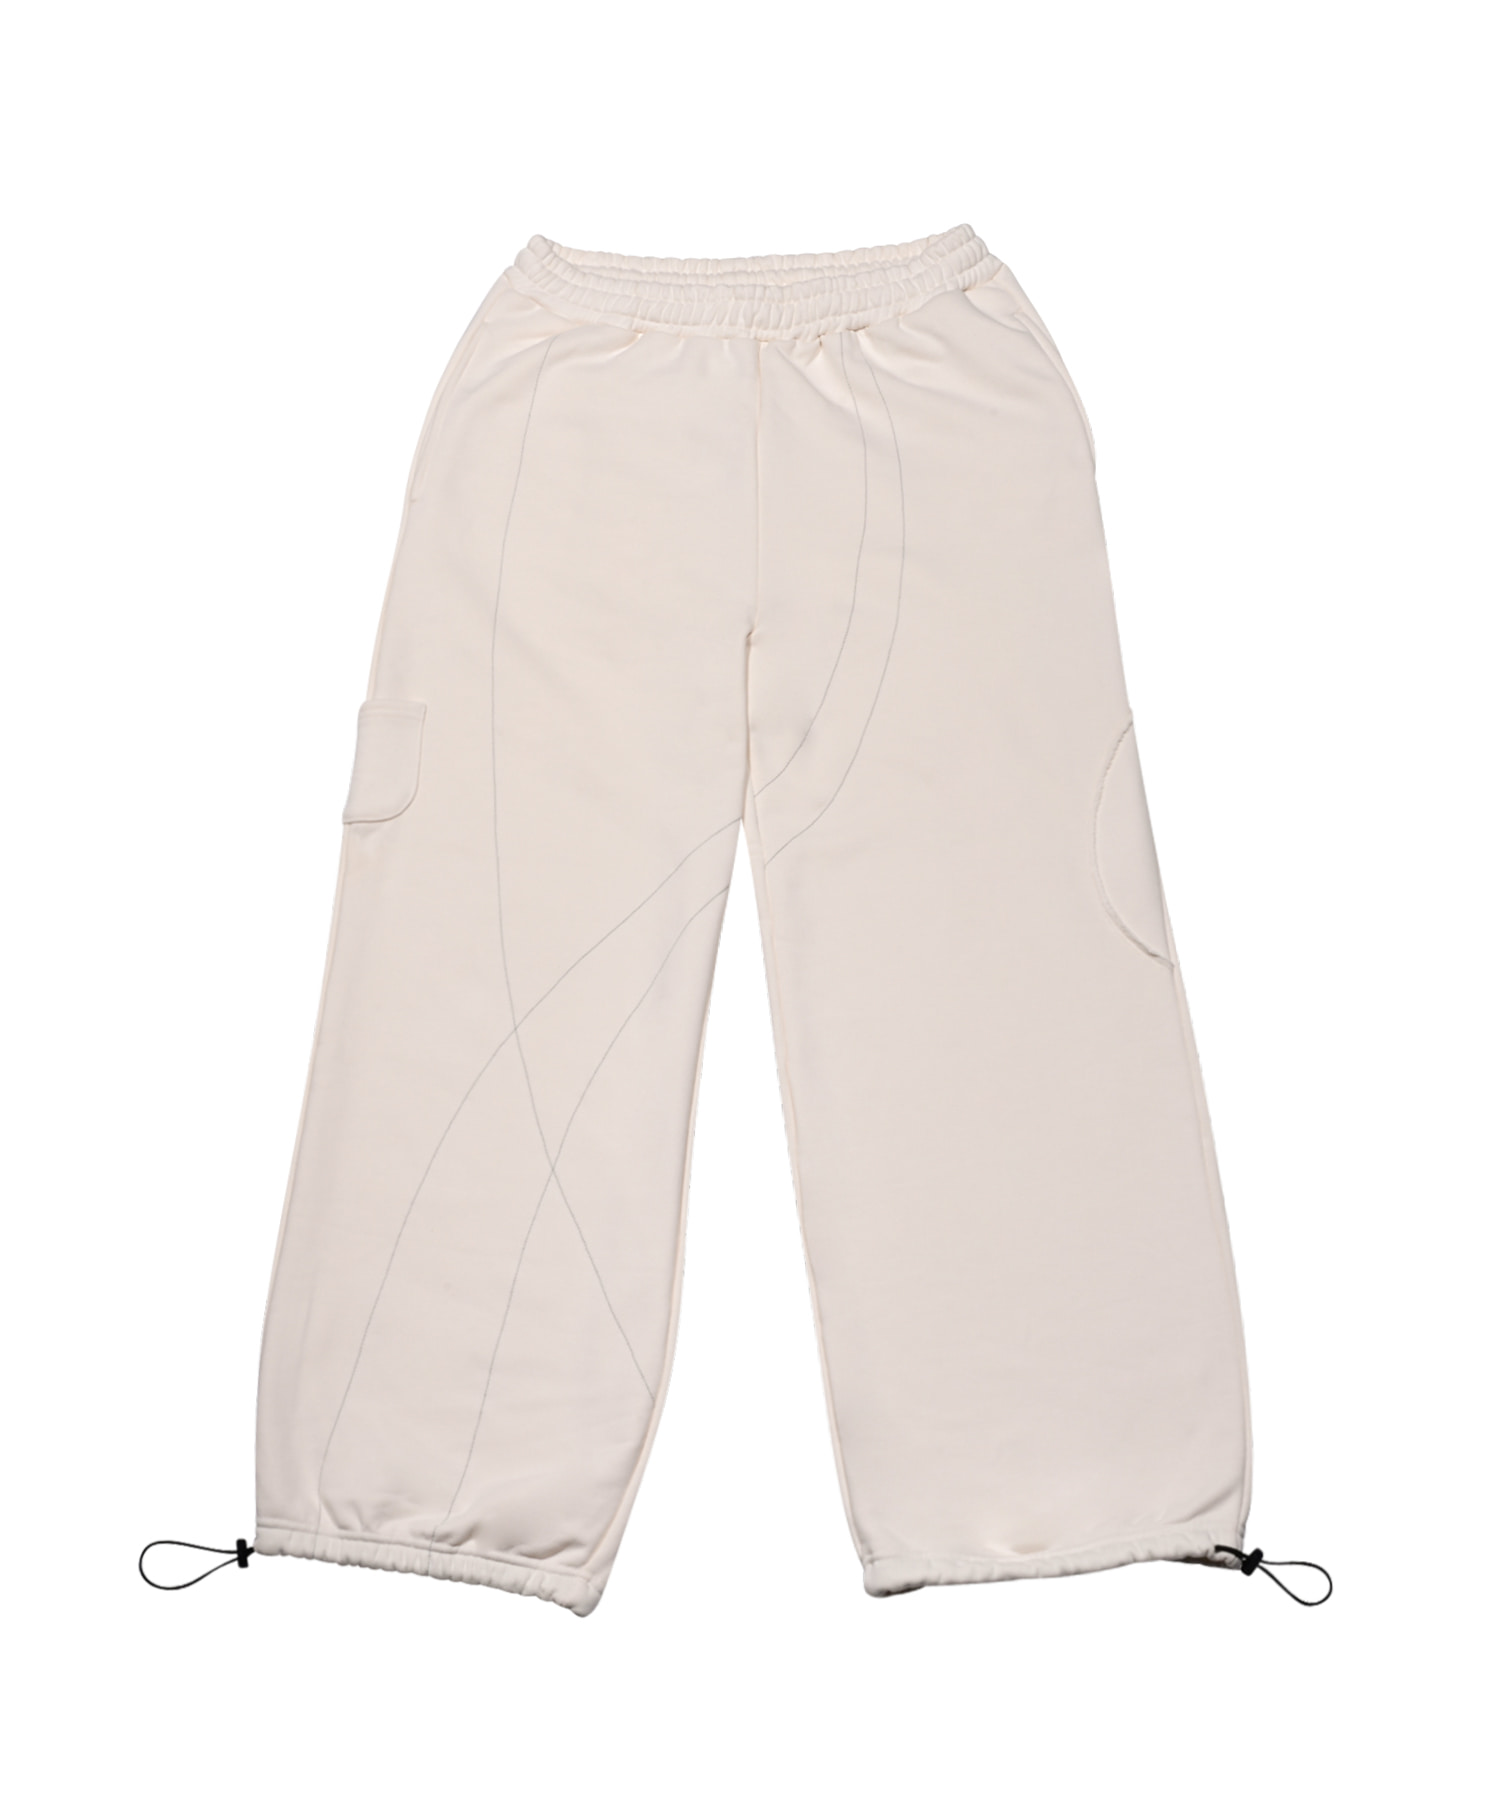 SWEAT PANTS IVORY